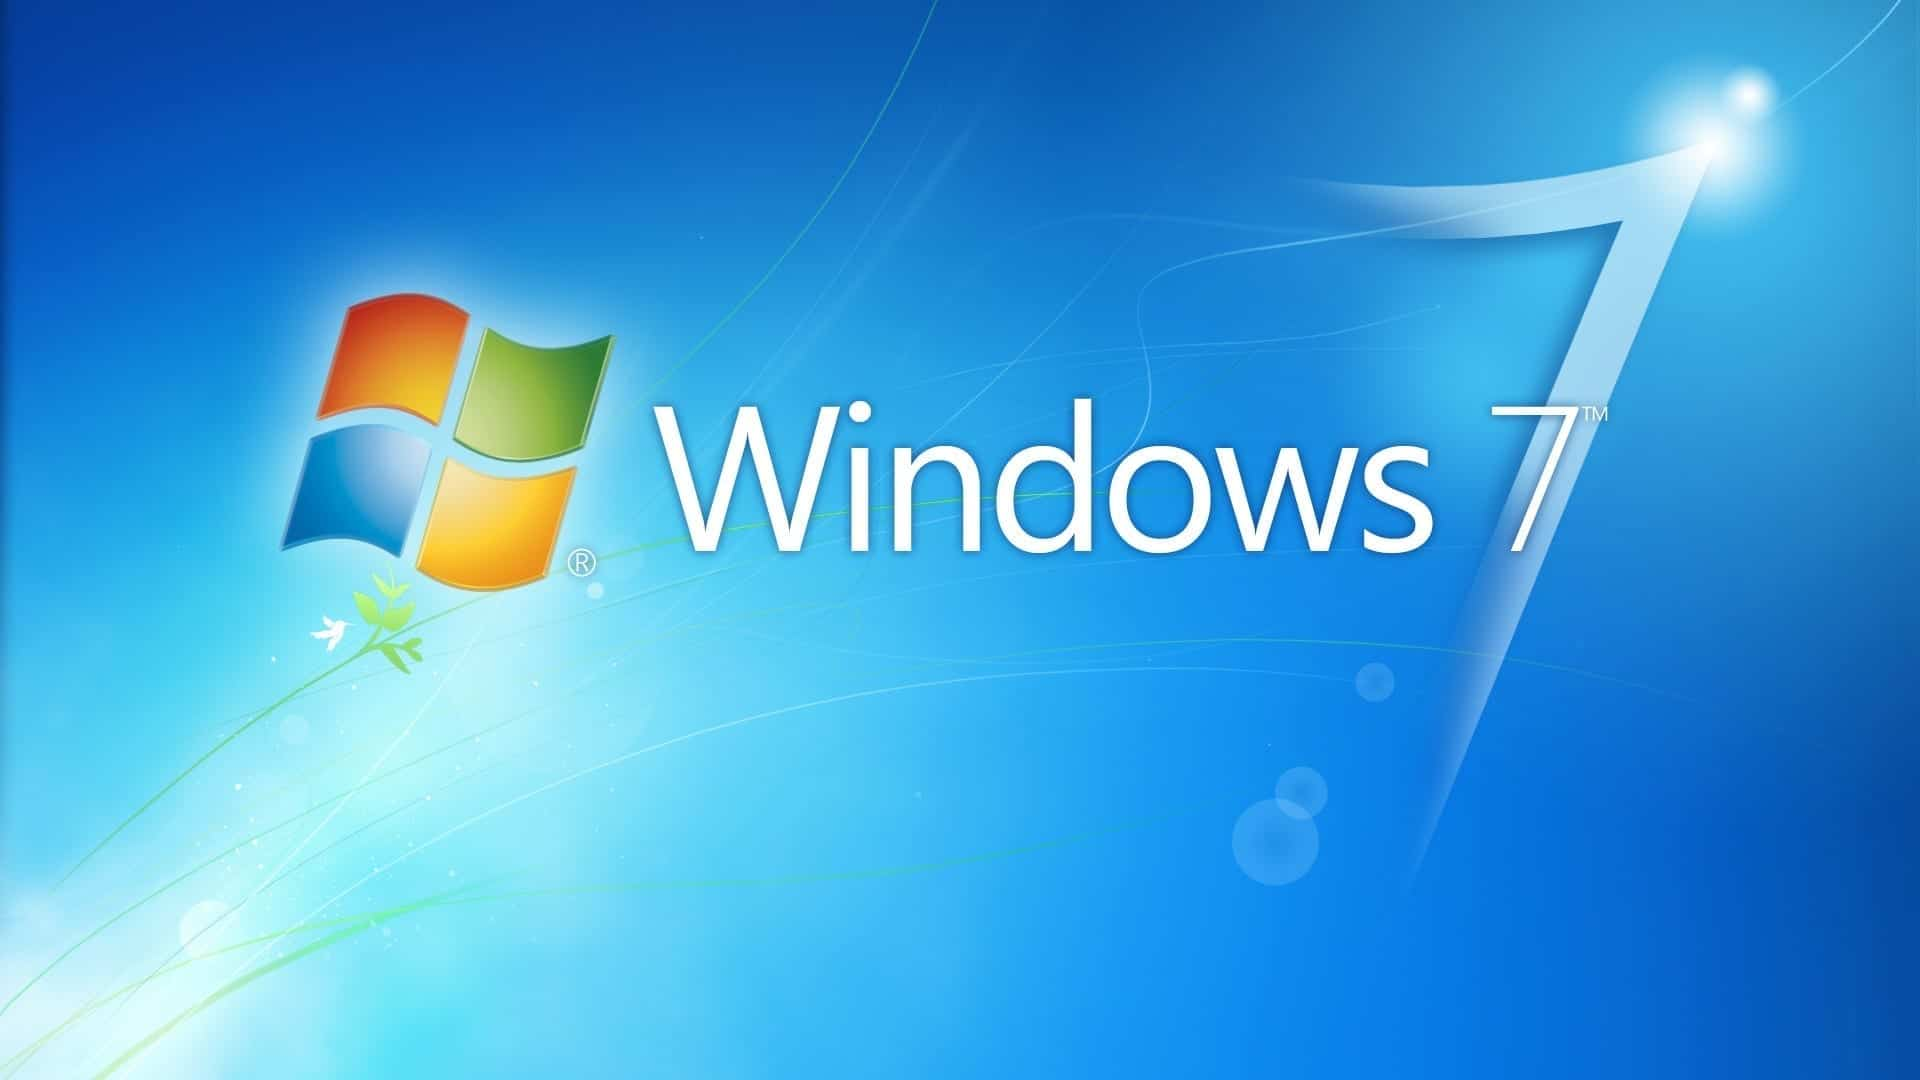 Microsoft will stop updating Windows 7 exactly from January 14, 2020. Our advice is change your operating system version now...